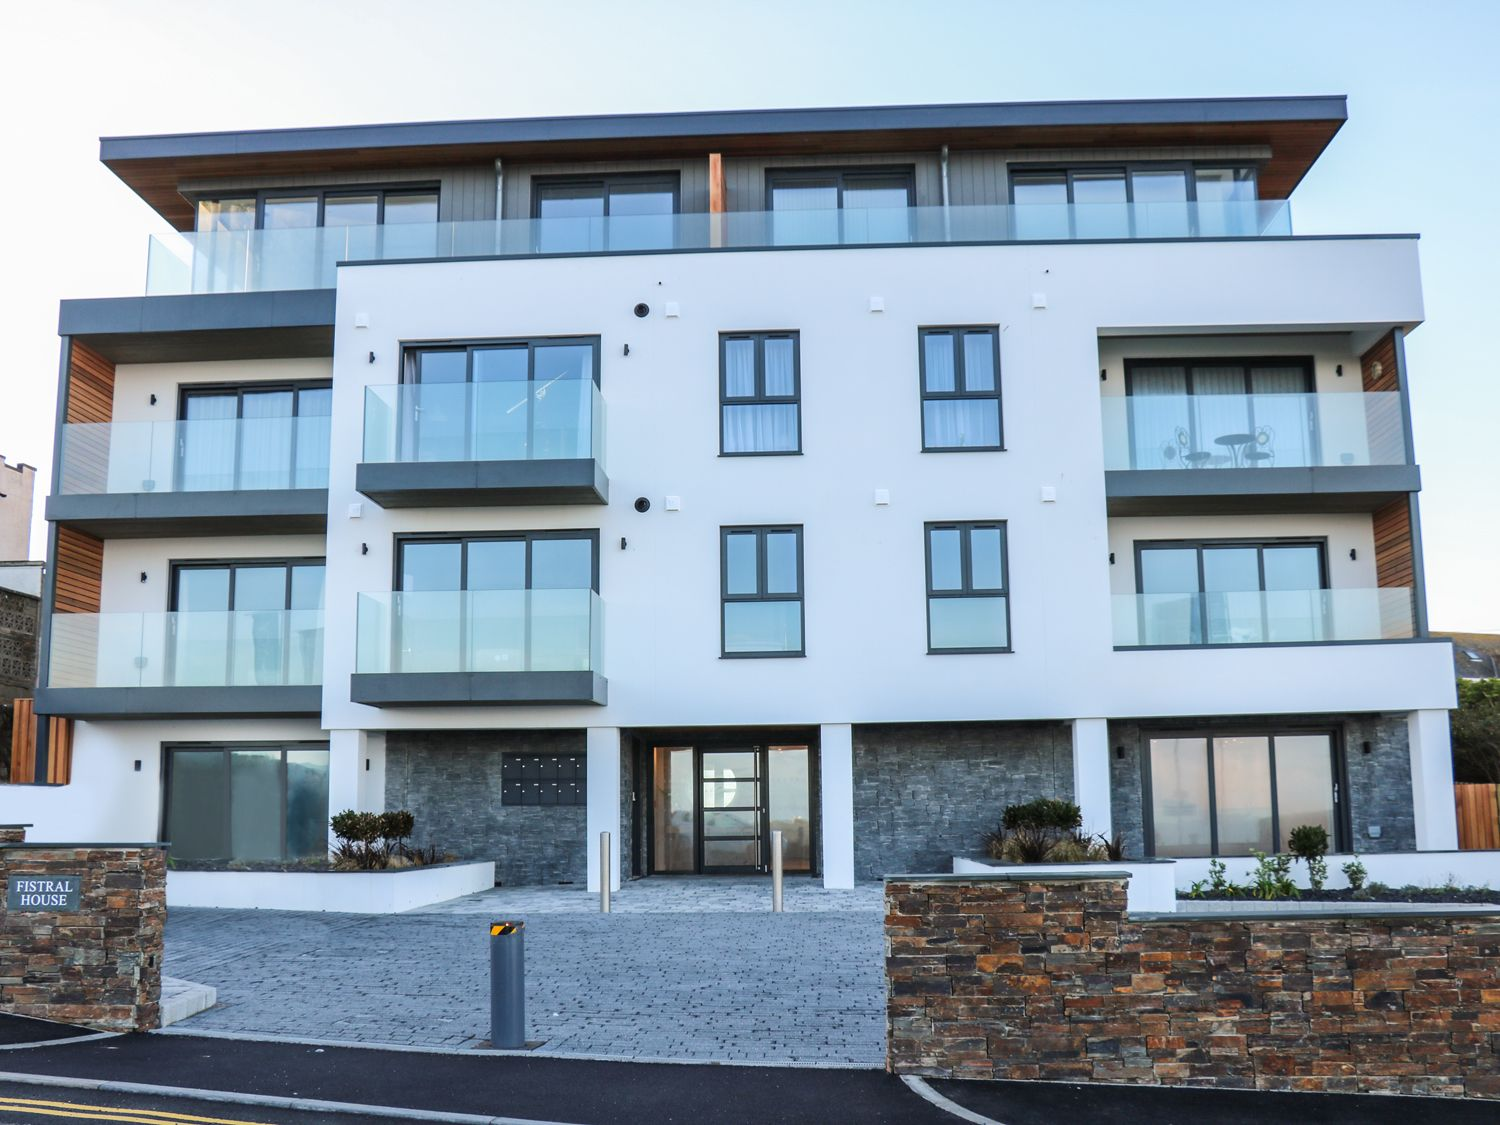 Little Fistral in Fistral - sleeps 4 people